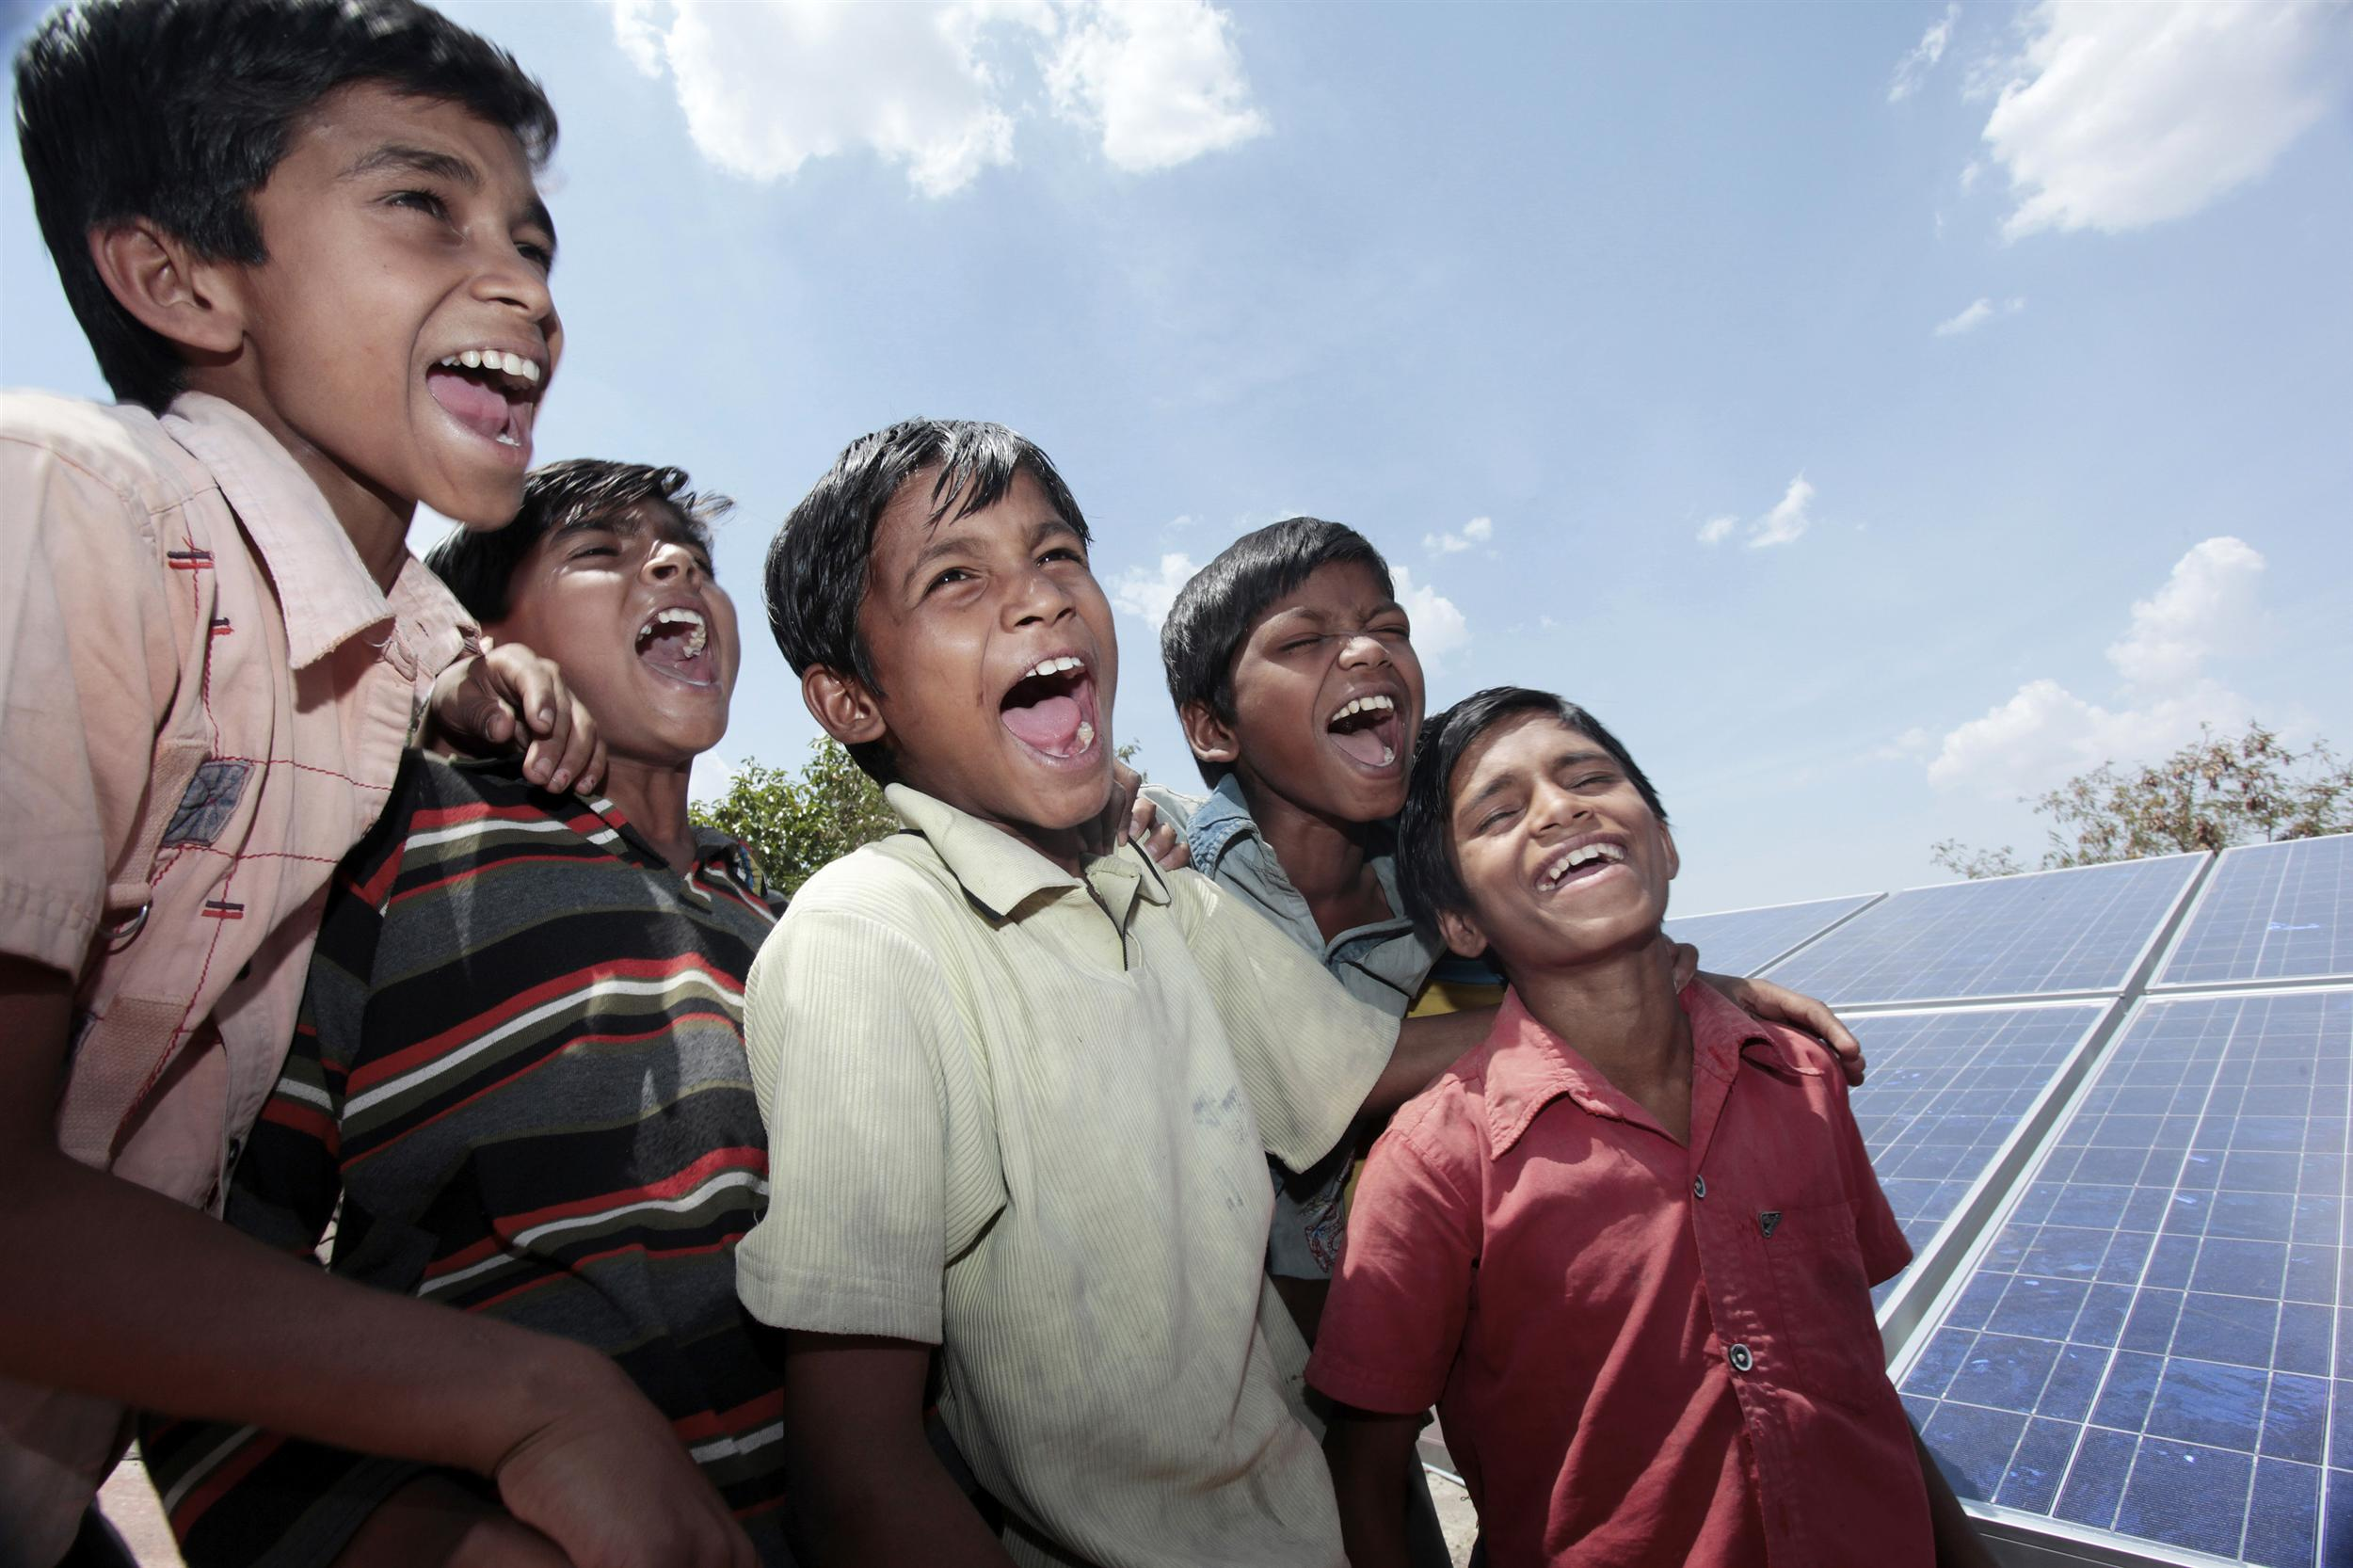 Children from India shouting for more solar power